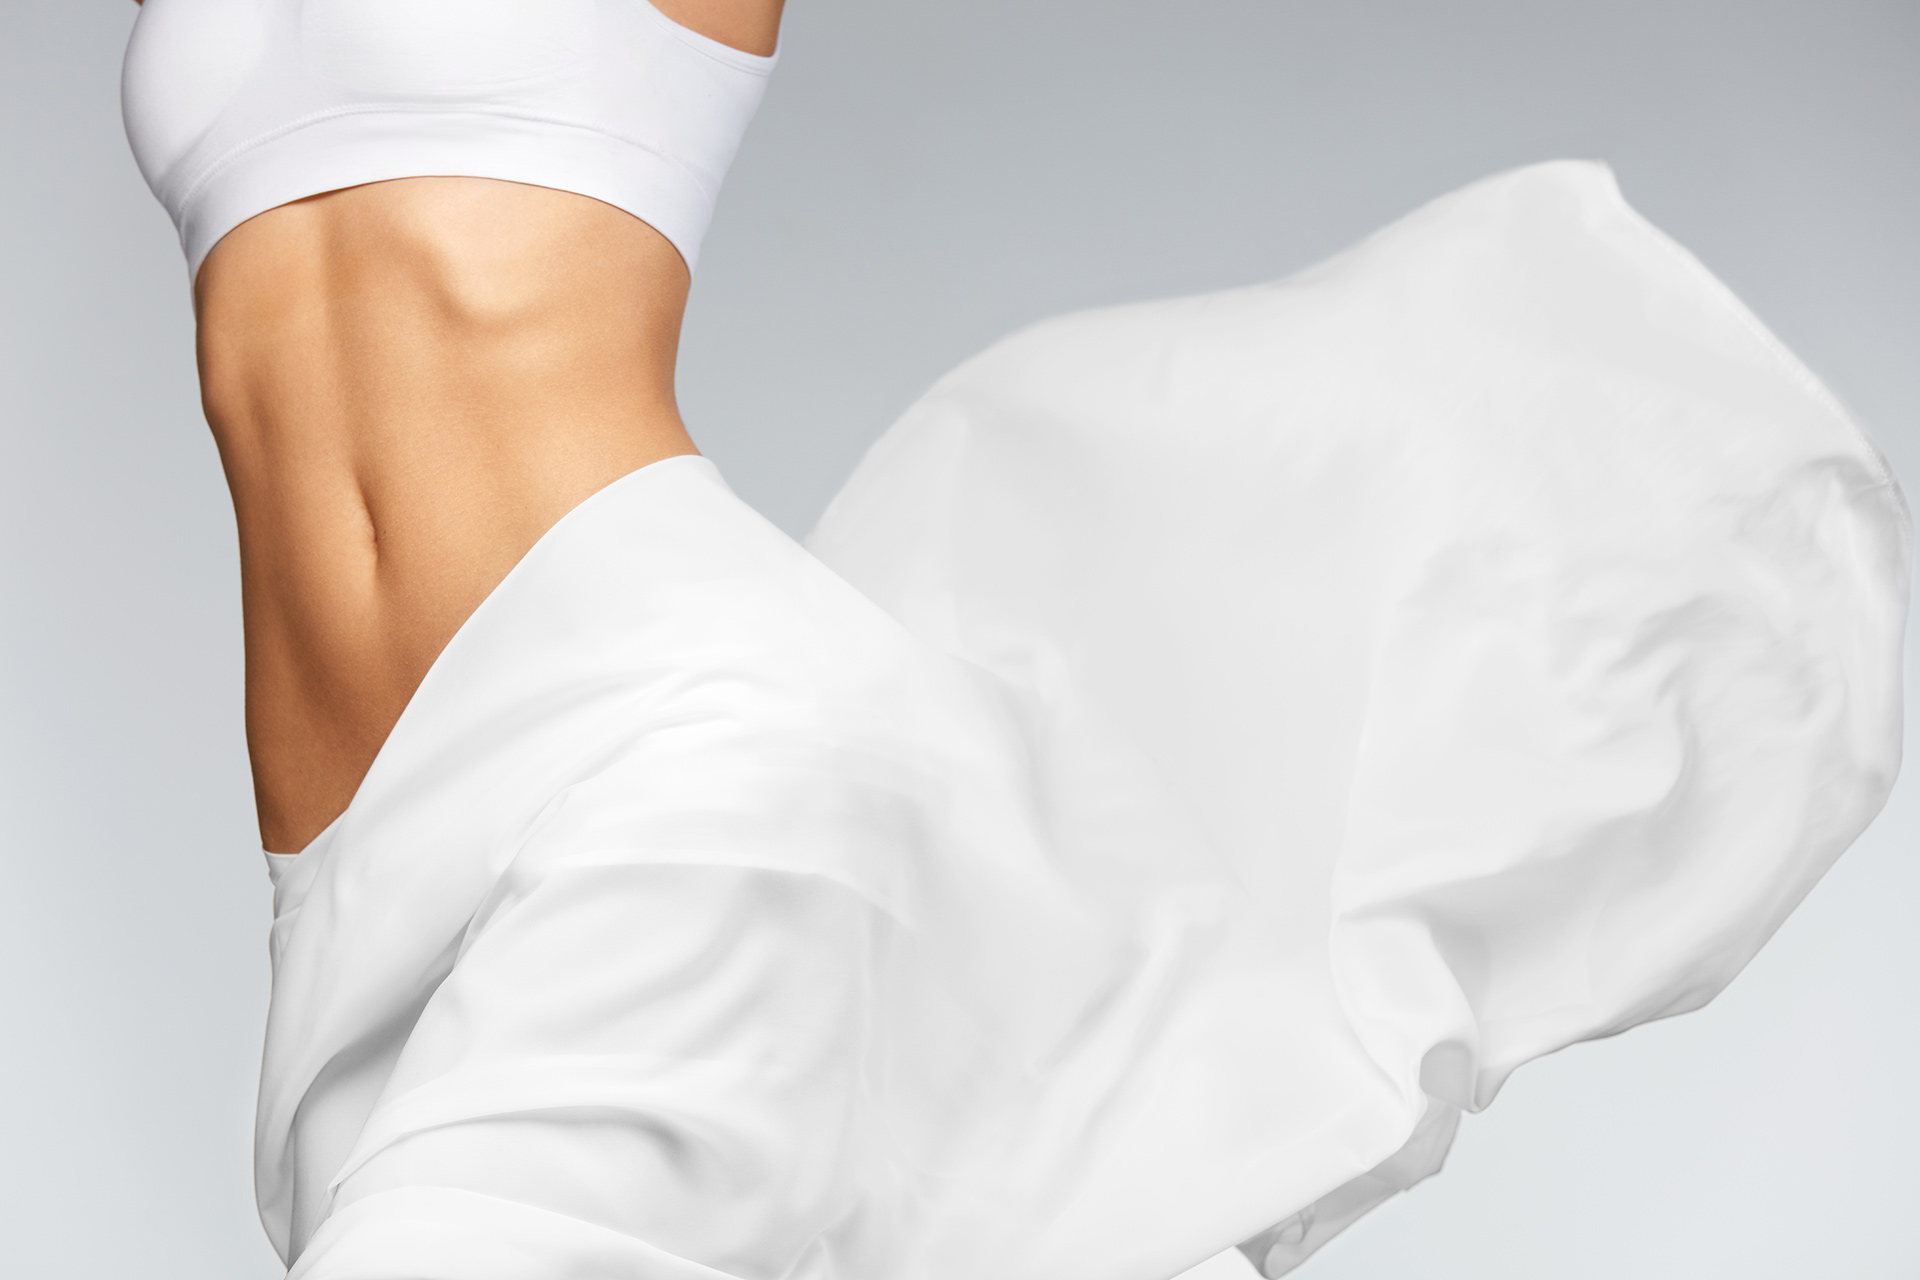 Woman Coolsculpting thighs